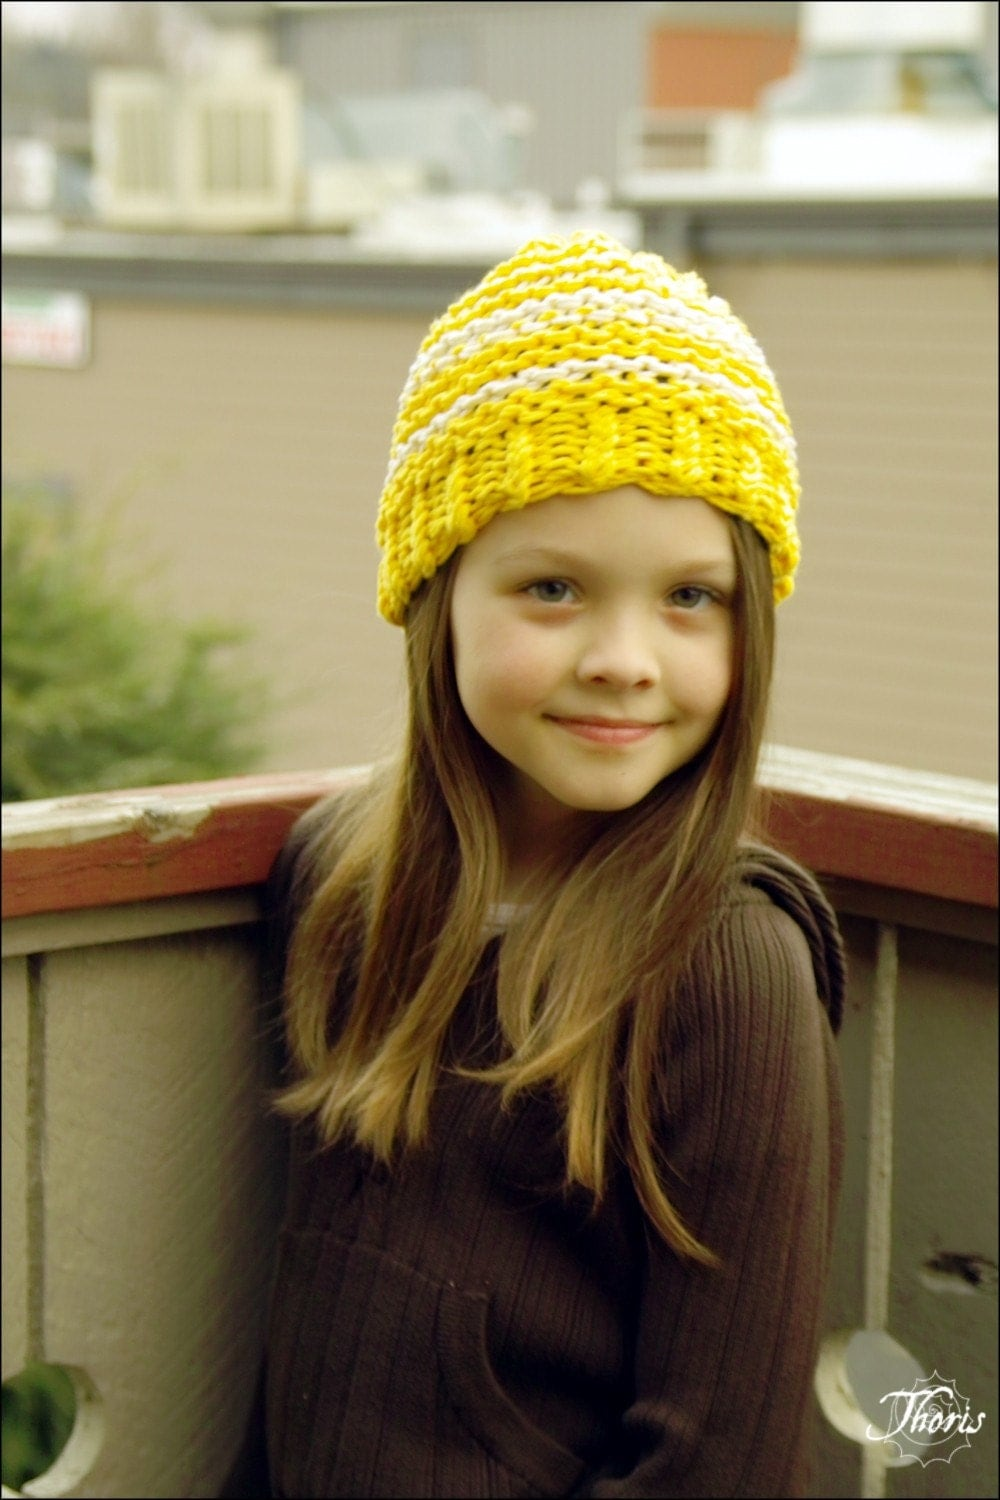 Trek - Cotton Knit Beanie in Sunshine and Clouds by ThorisDesigns